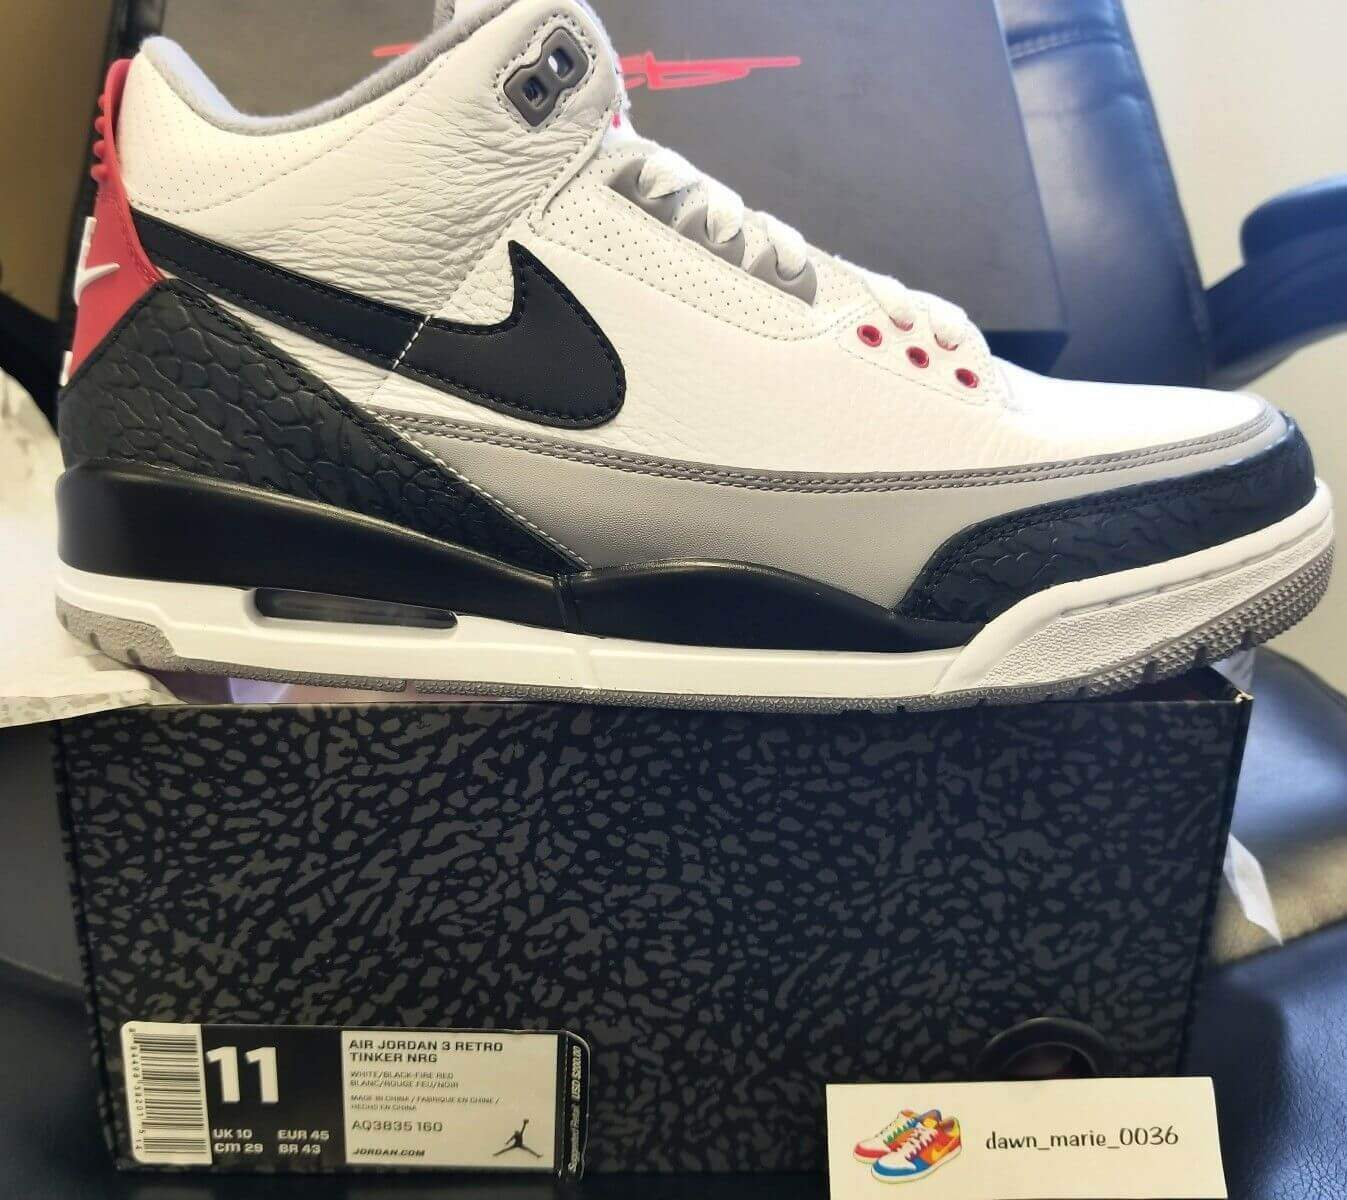 fe77df6af2c ... the air jordan 3 nrg tinker jth is available early the implications